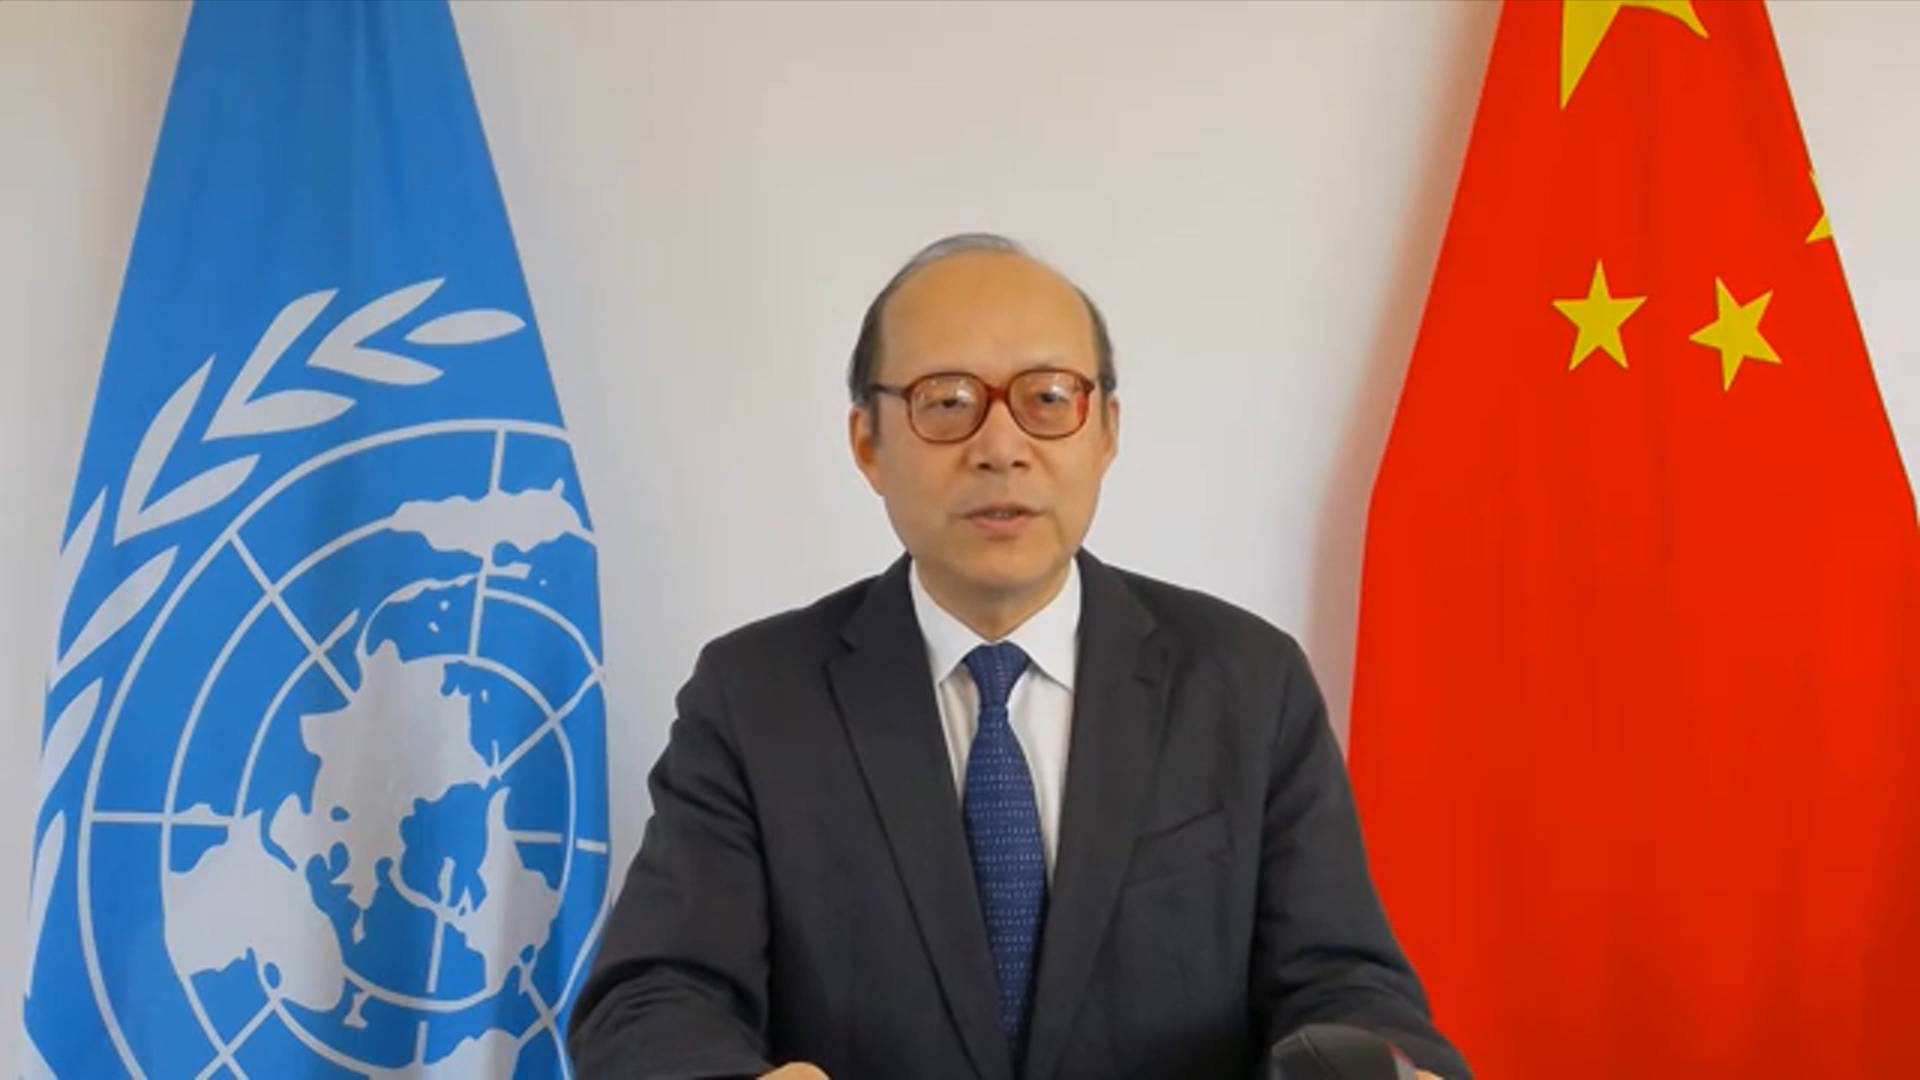 GLOBALink | Wars, conflicts main causes of large-scale human rights violations: Chinese diplomat